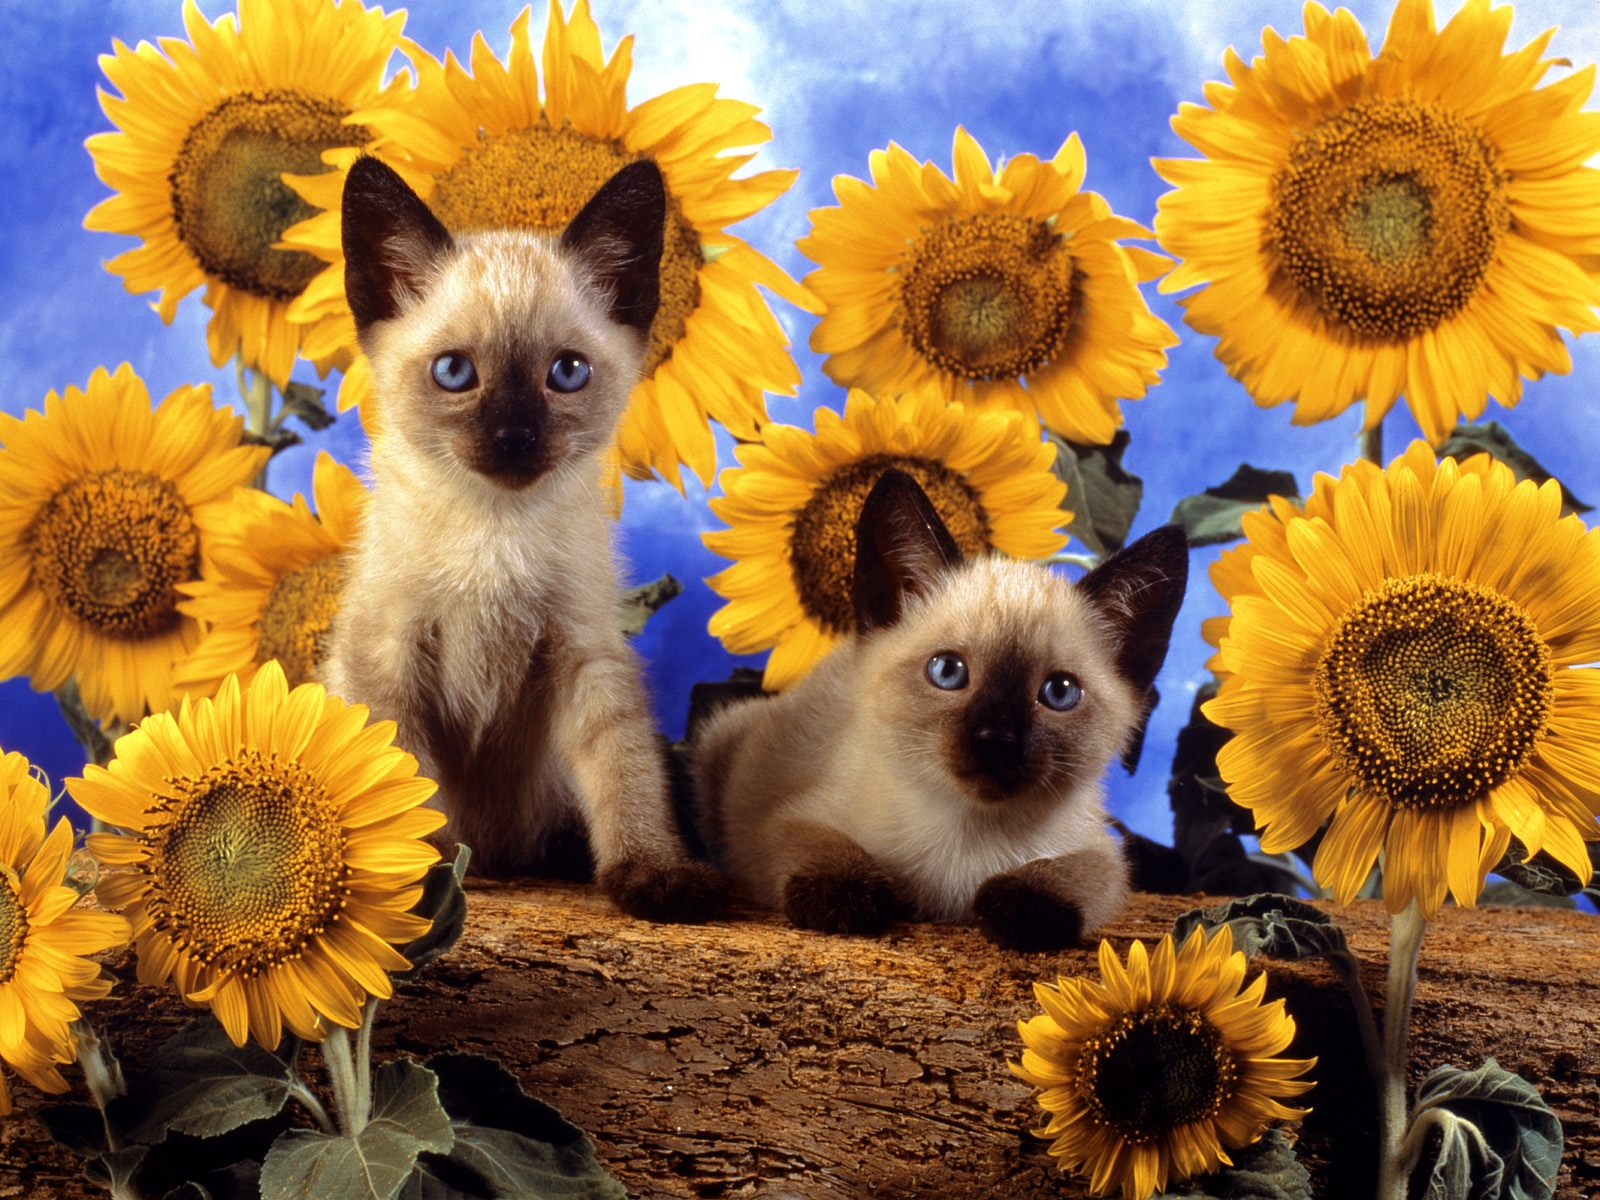 click to free download the wallpaper--Image of Cute Cats, Two Kittens Around Nature Flowers, Peaceful Look 1600X1200 free wallpaper download